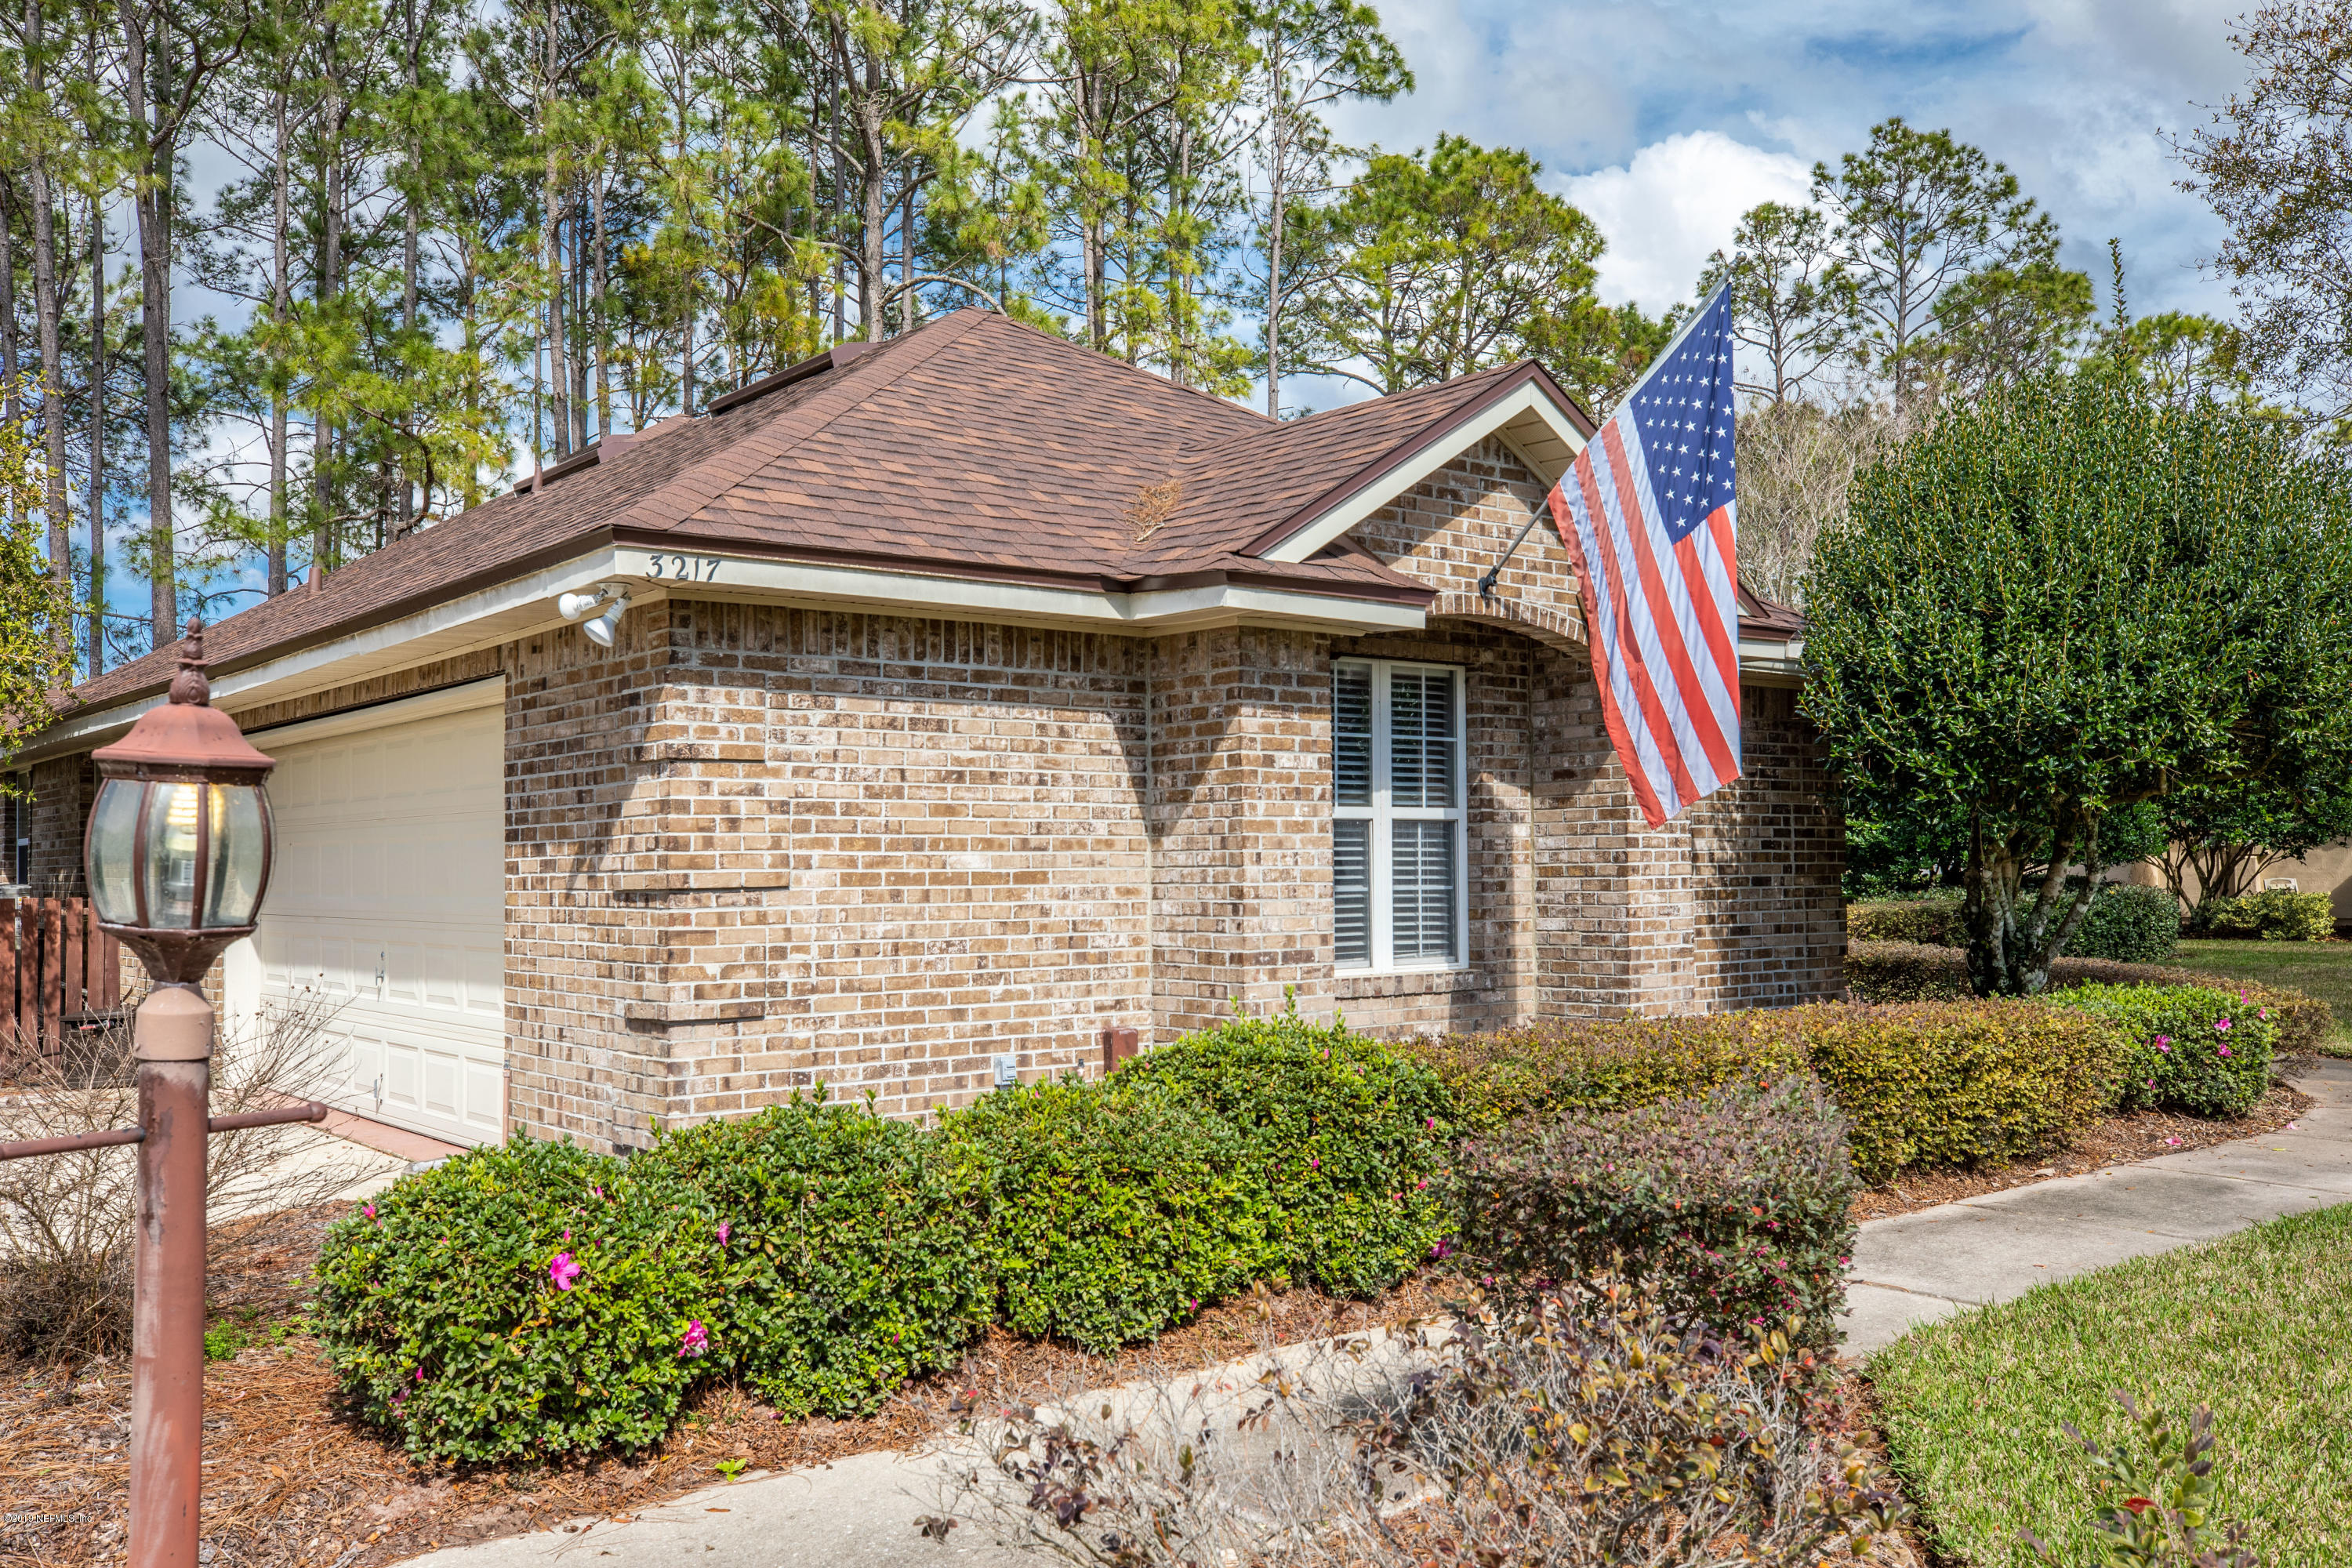 3217 SEQUOYAH, JACKSONVILLE, FLORIDA 32259, 4 Bedrooms Bedrooms, ,2 BathroomsBathrooms,Residential - single family,For sale,SEQUOYAH,979452